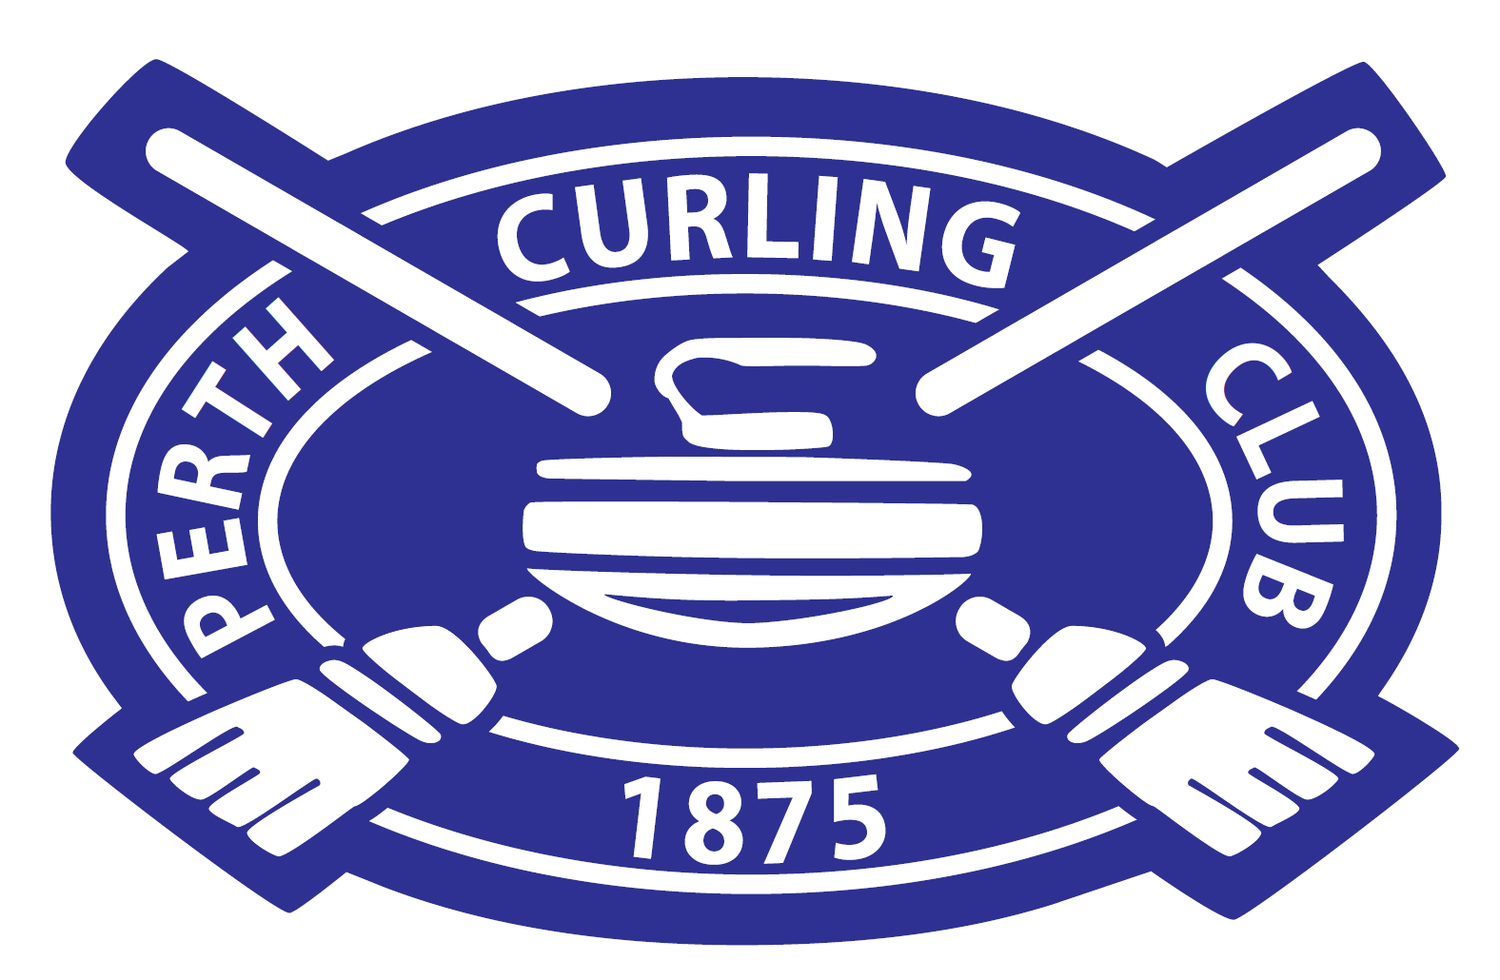 Perth Curling Club